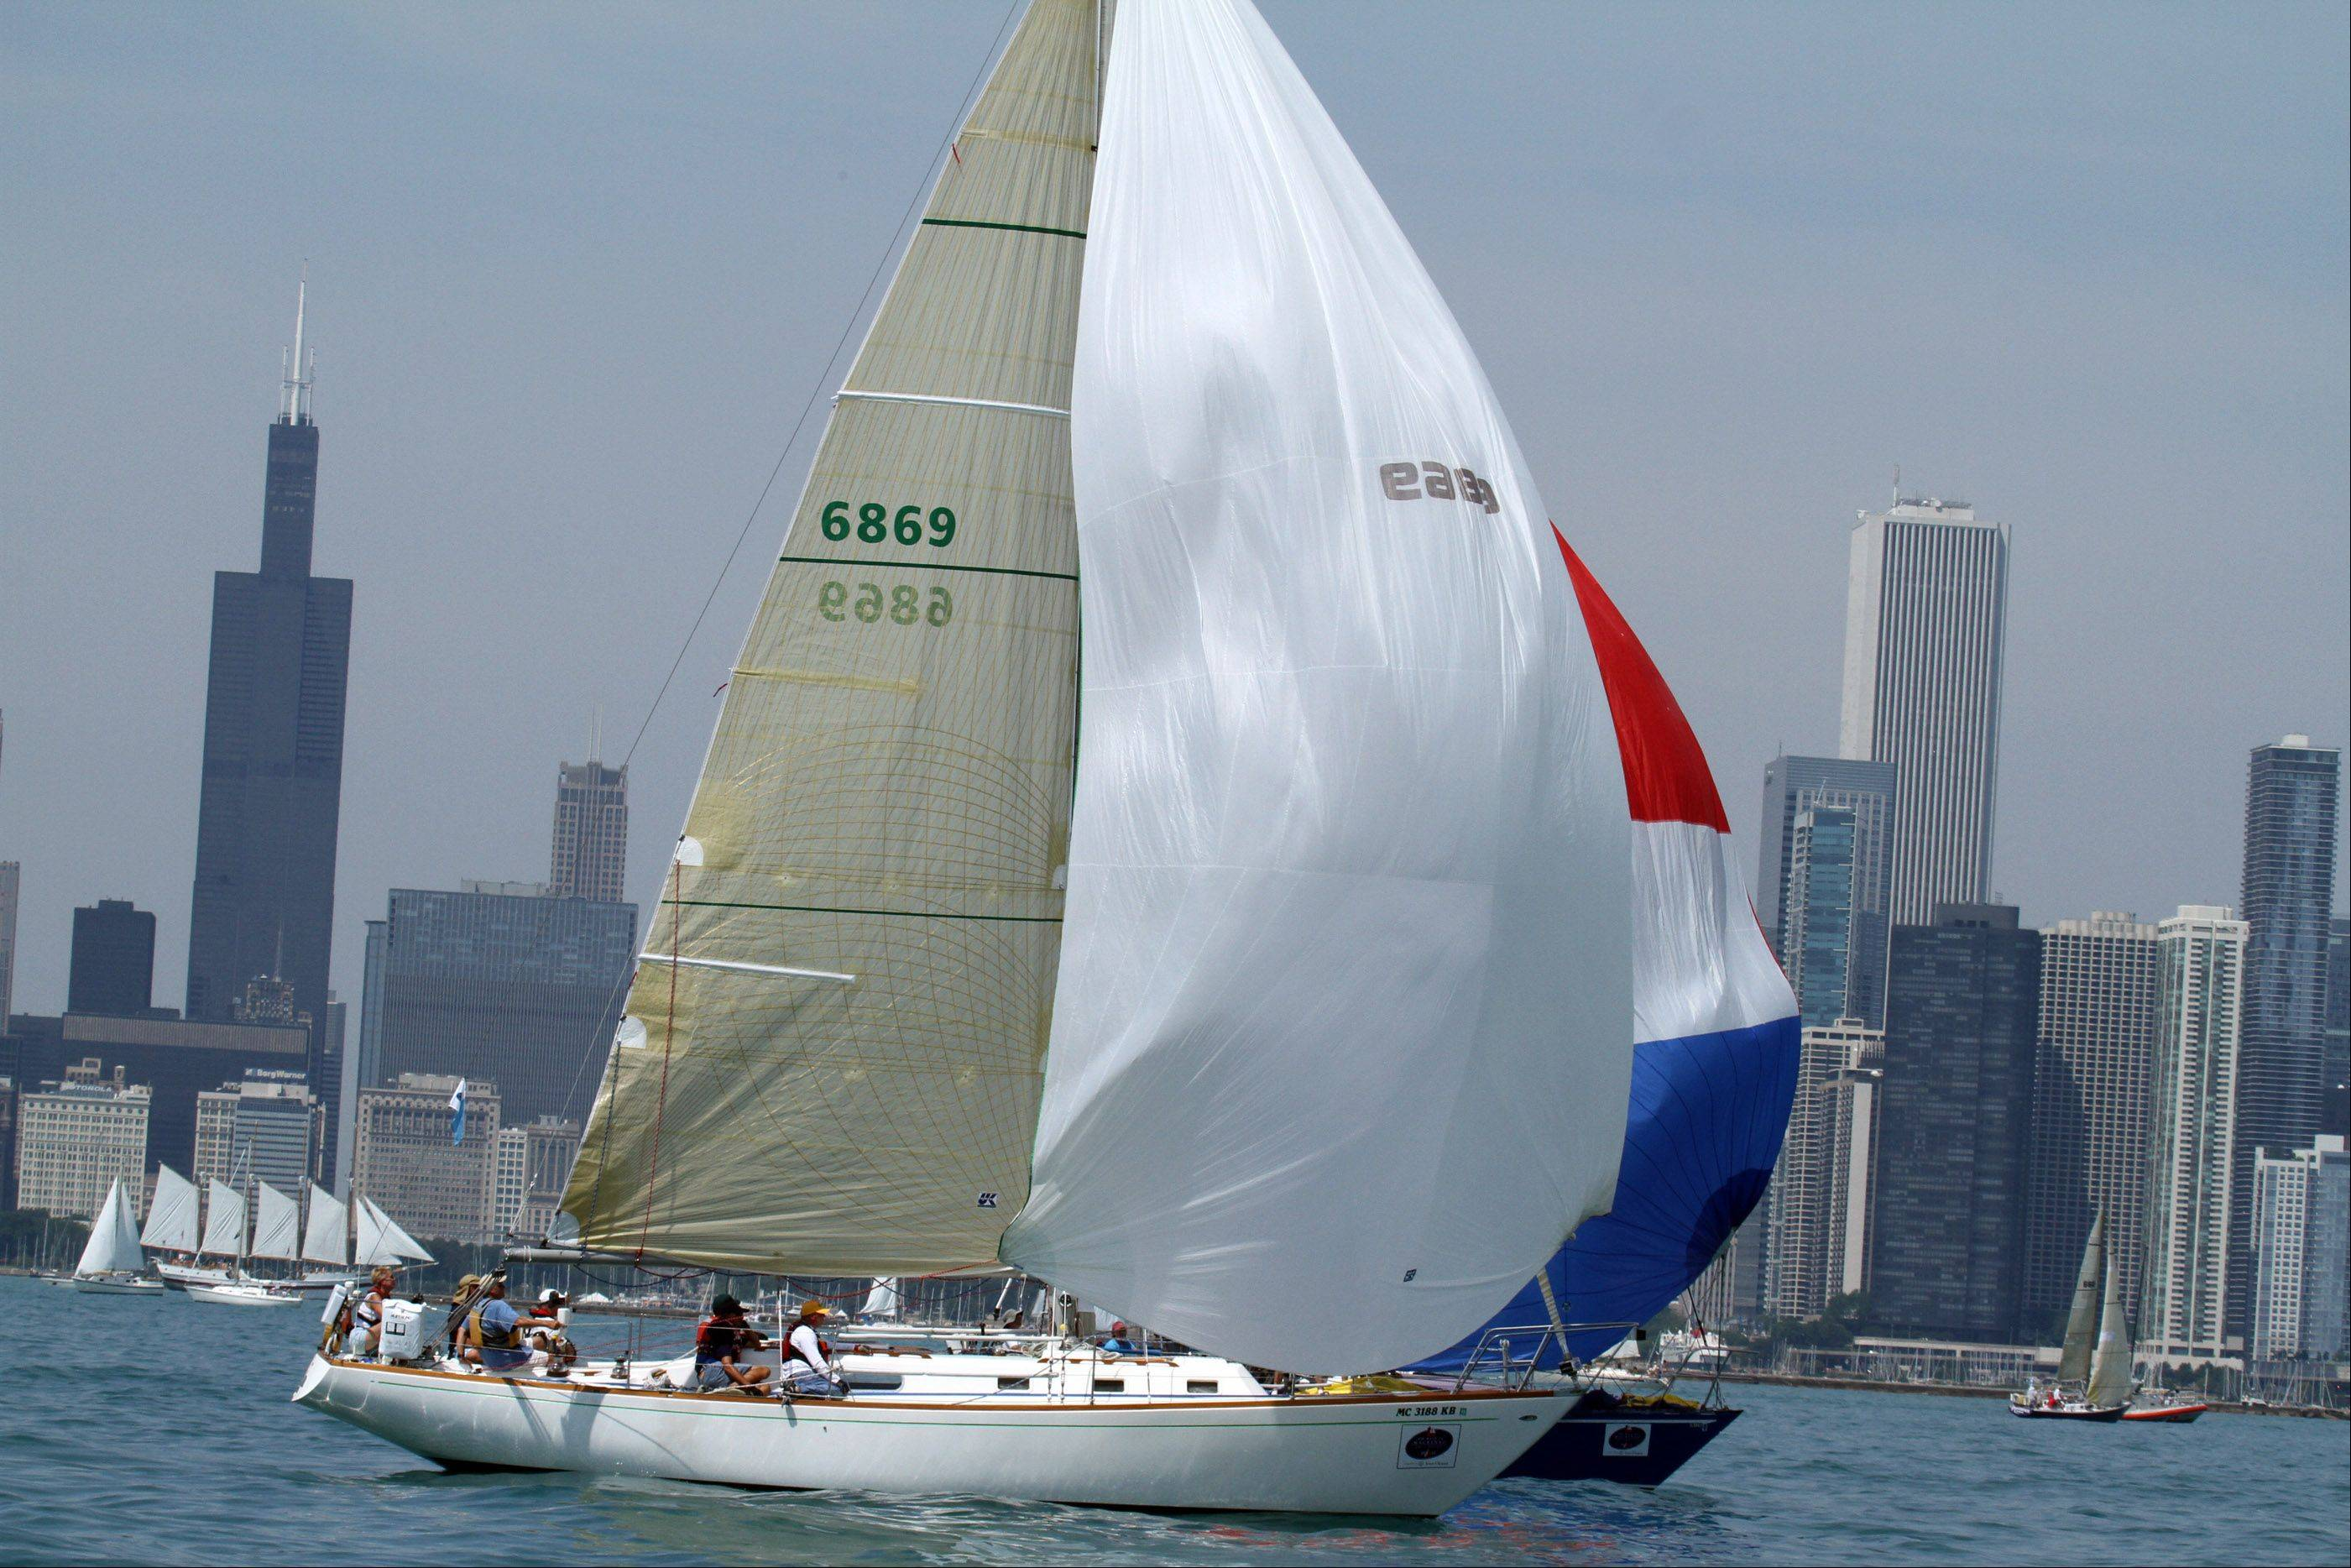 Cynthia, USA 6869, owned by Andrew Grootendorst and James DeVries of Coloma, Michigan, with St Joseph River Yacht Club, at the start of the 104th Chicago Yacht Club Race to Mackinac on Lake Michigan of Chicago on Saturday, July 21.